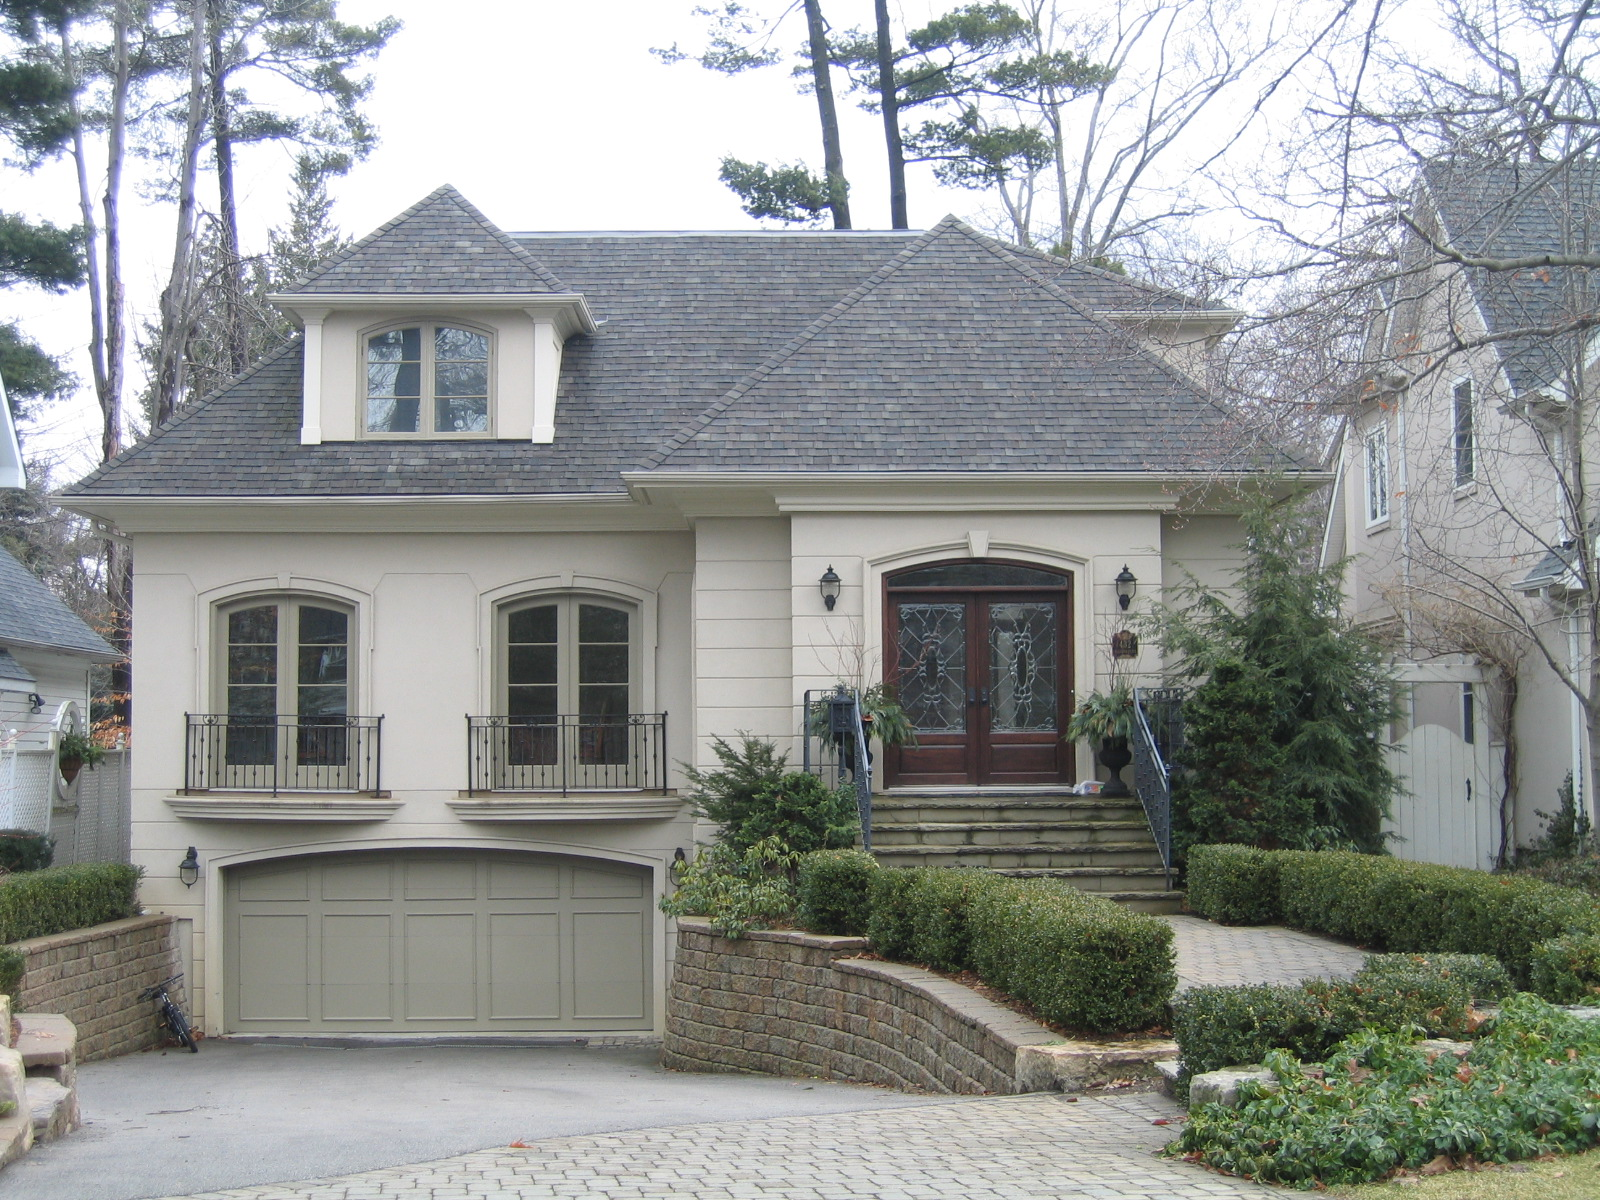 RESIDENTIAL STUCCO -